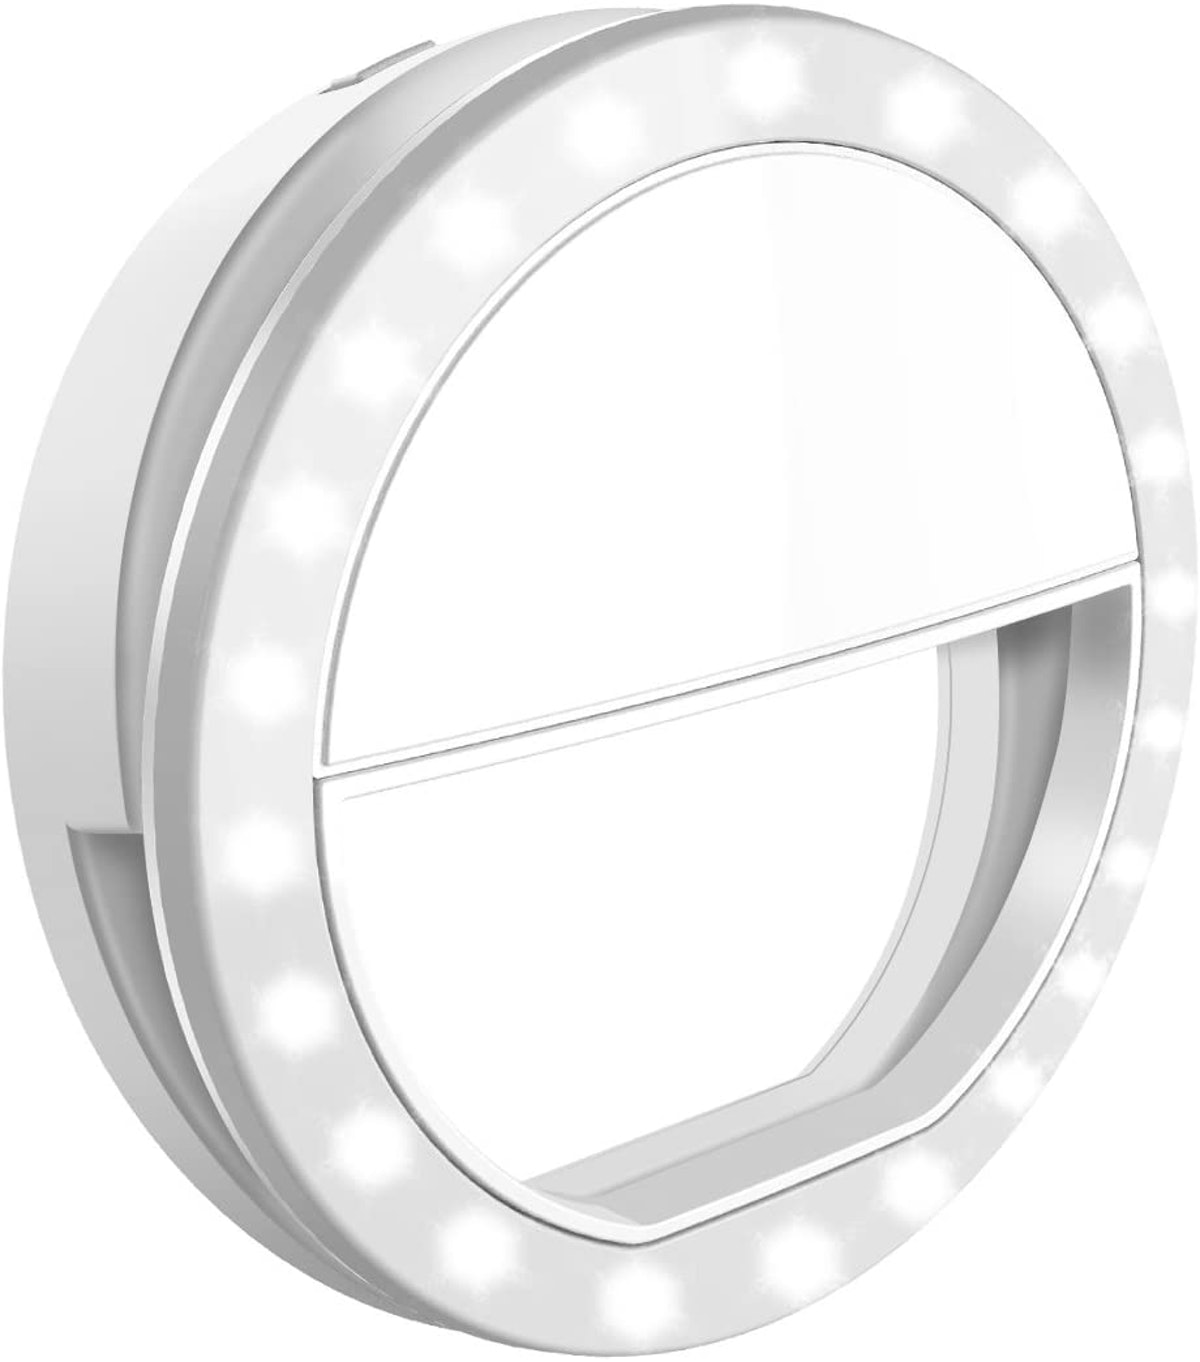 Criacr Rechargeable Selfie Ring Light